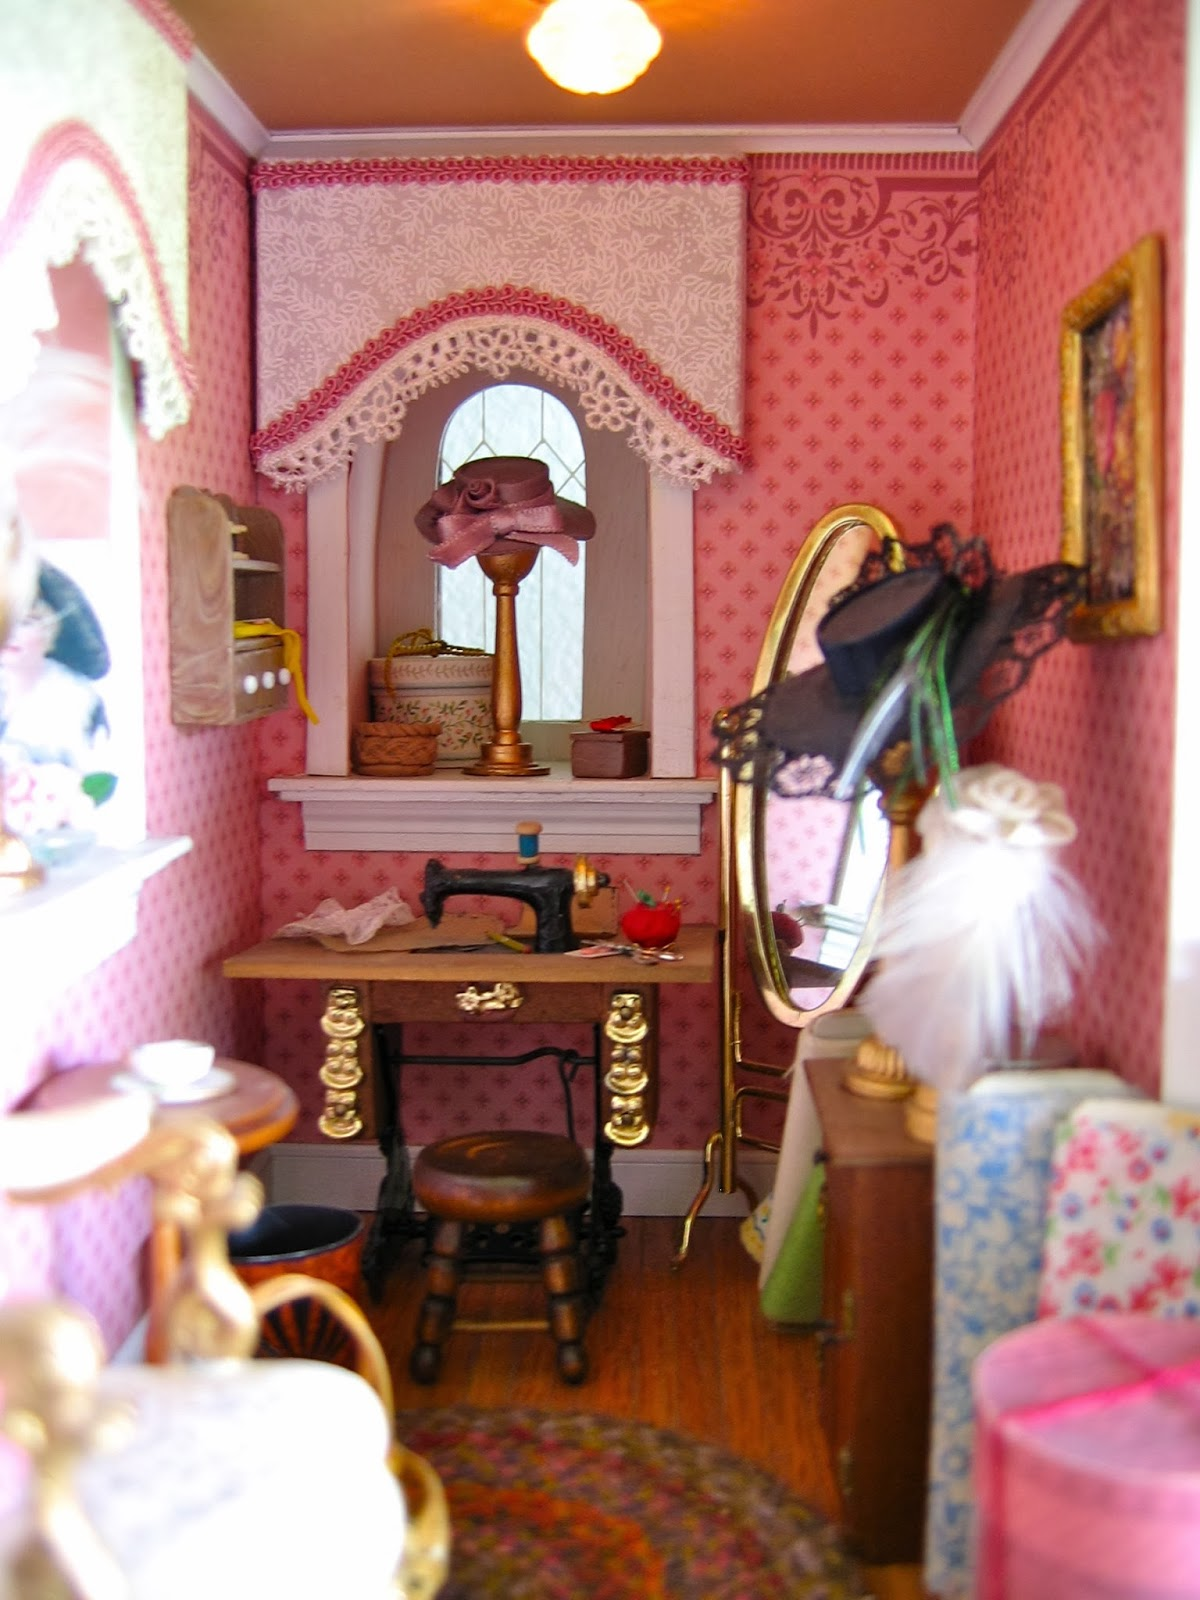 minature sewing room